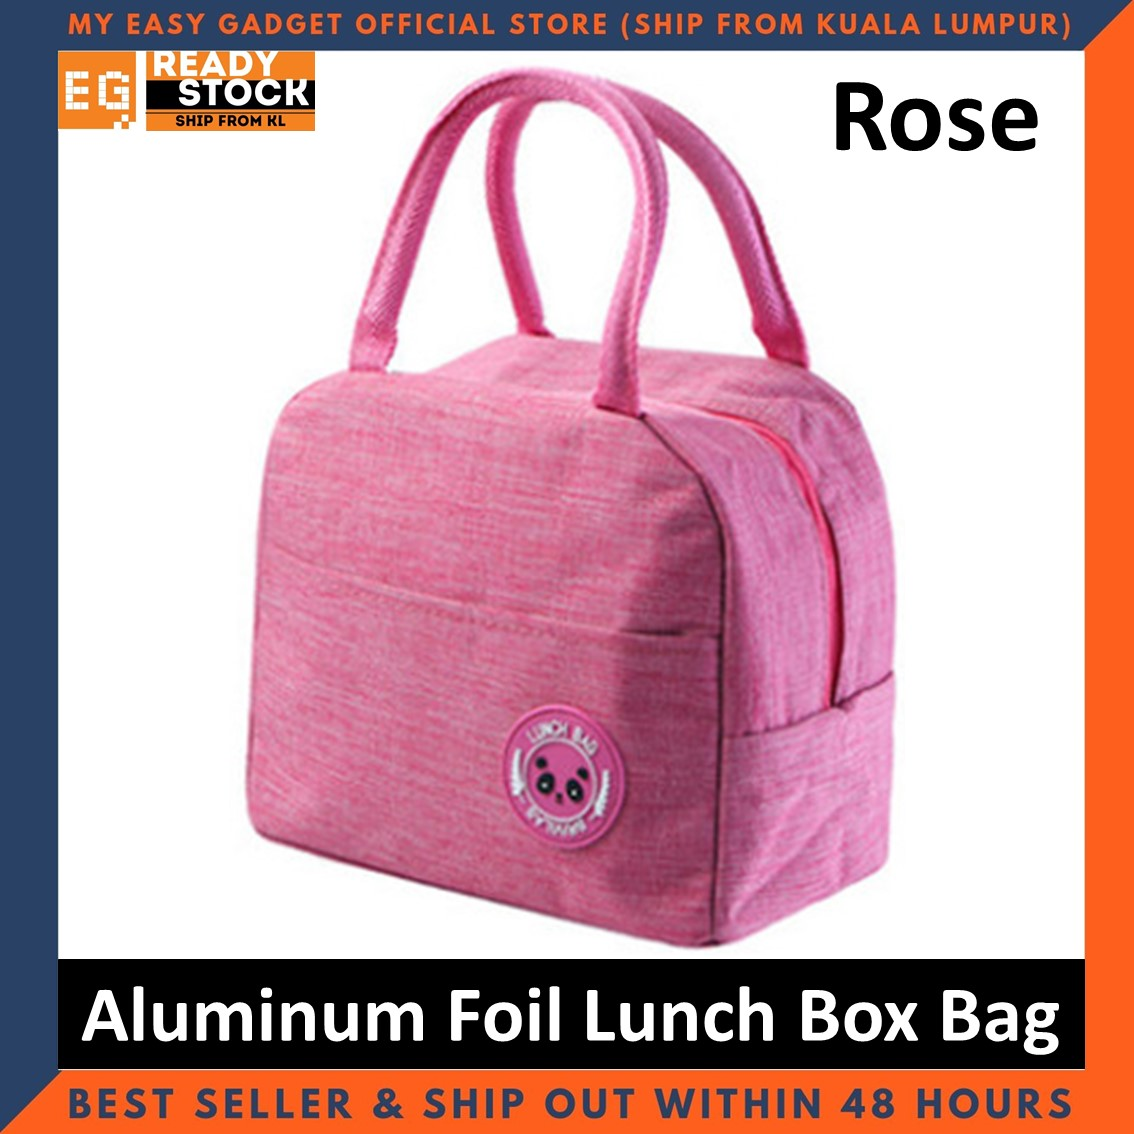 New Oxford Cloth Double Portable Thick Aluminum Foil Lunch Box Bag Lunch Bag Insulation Bag